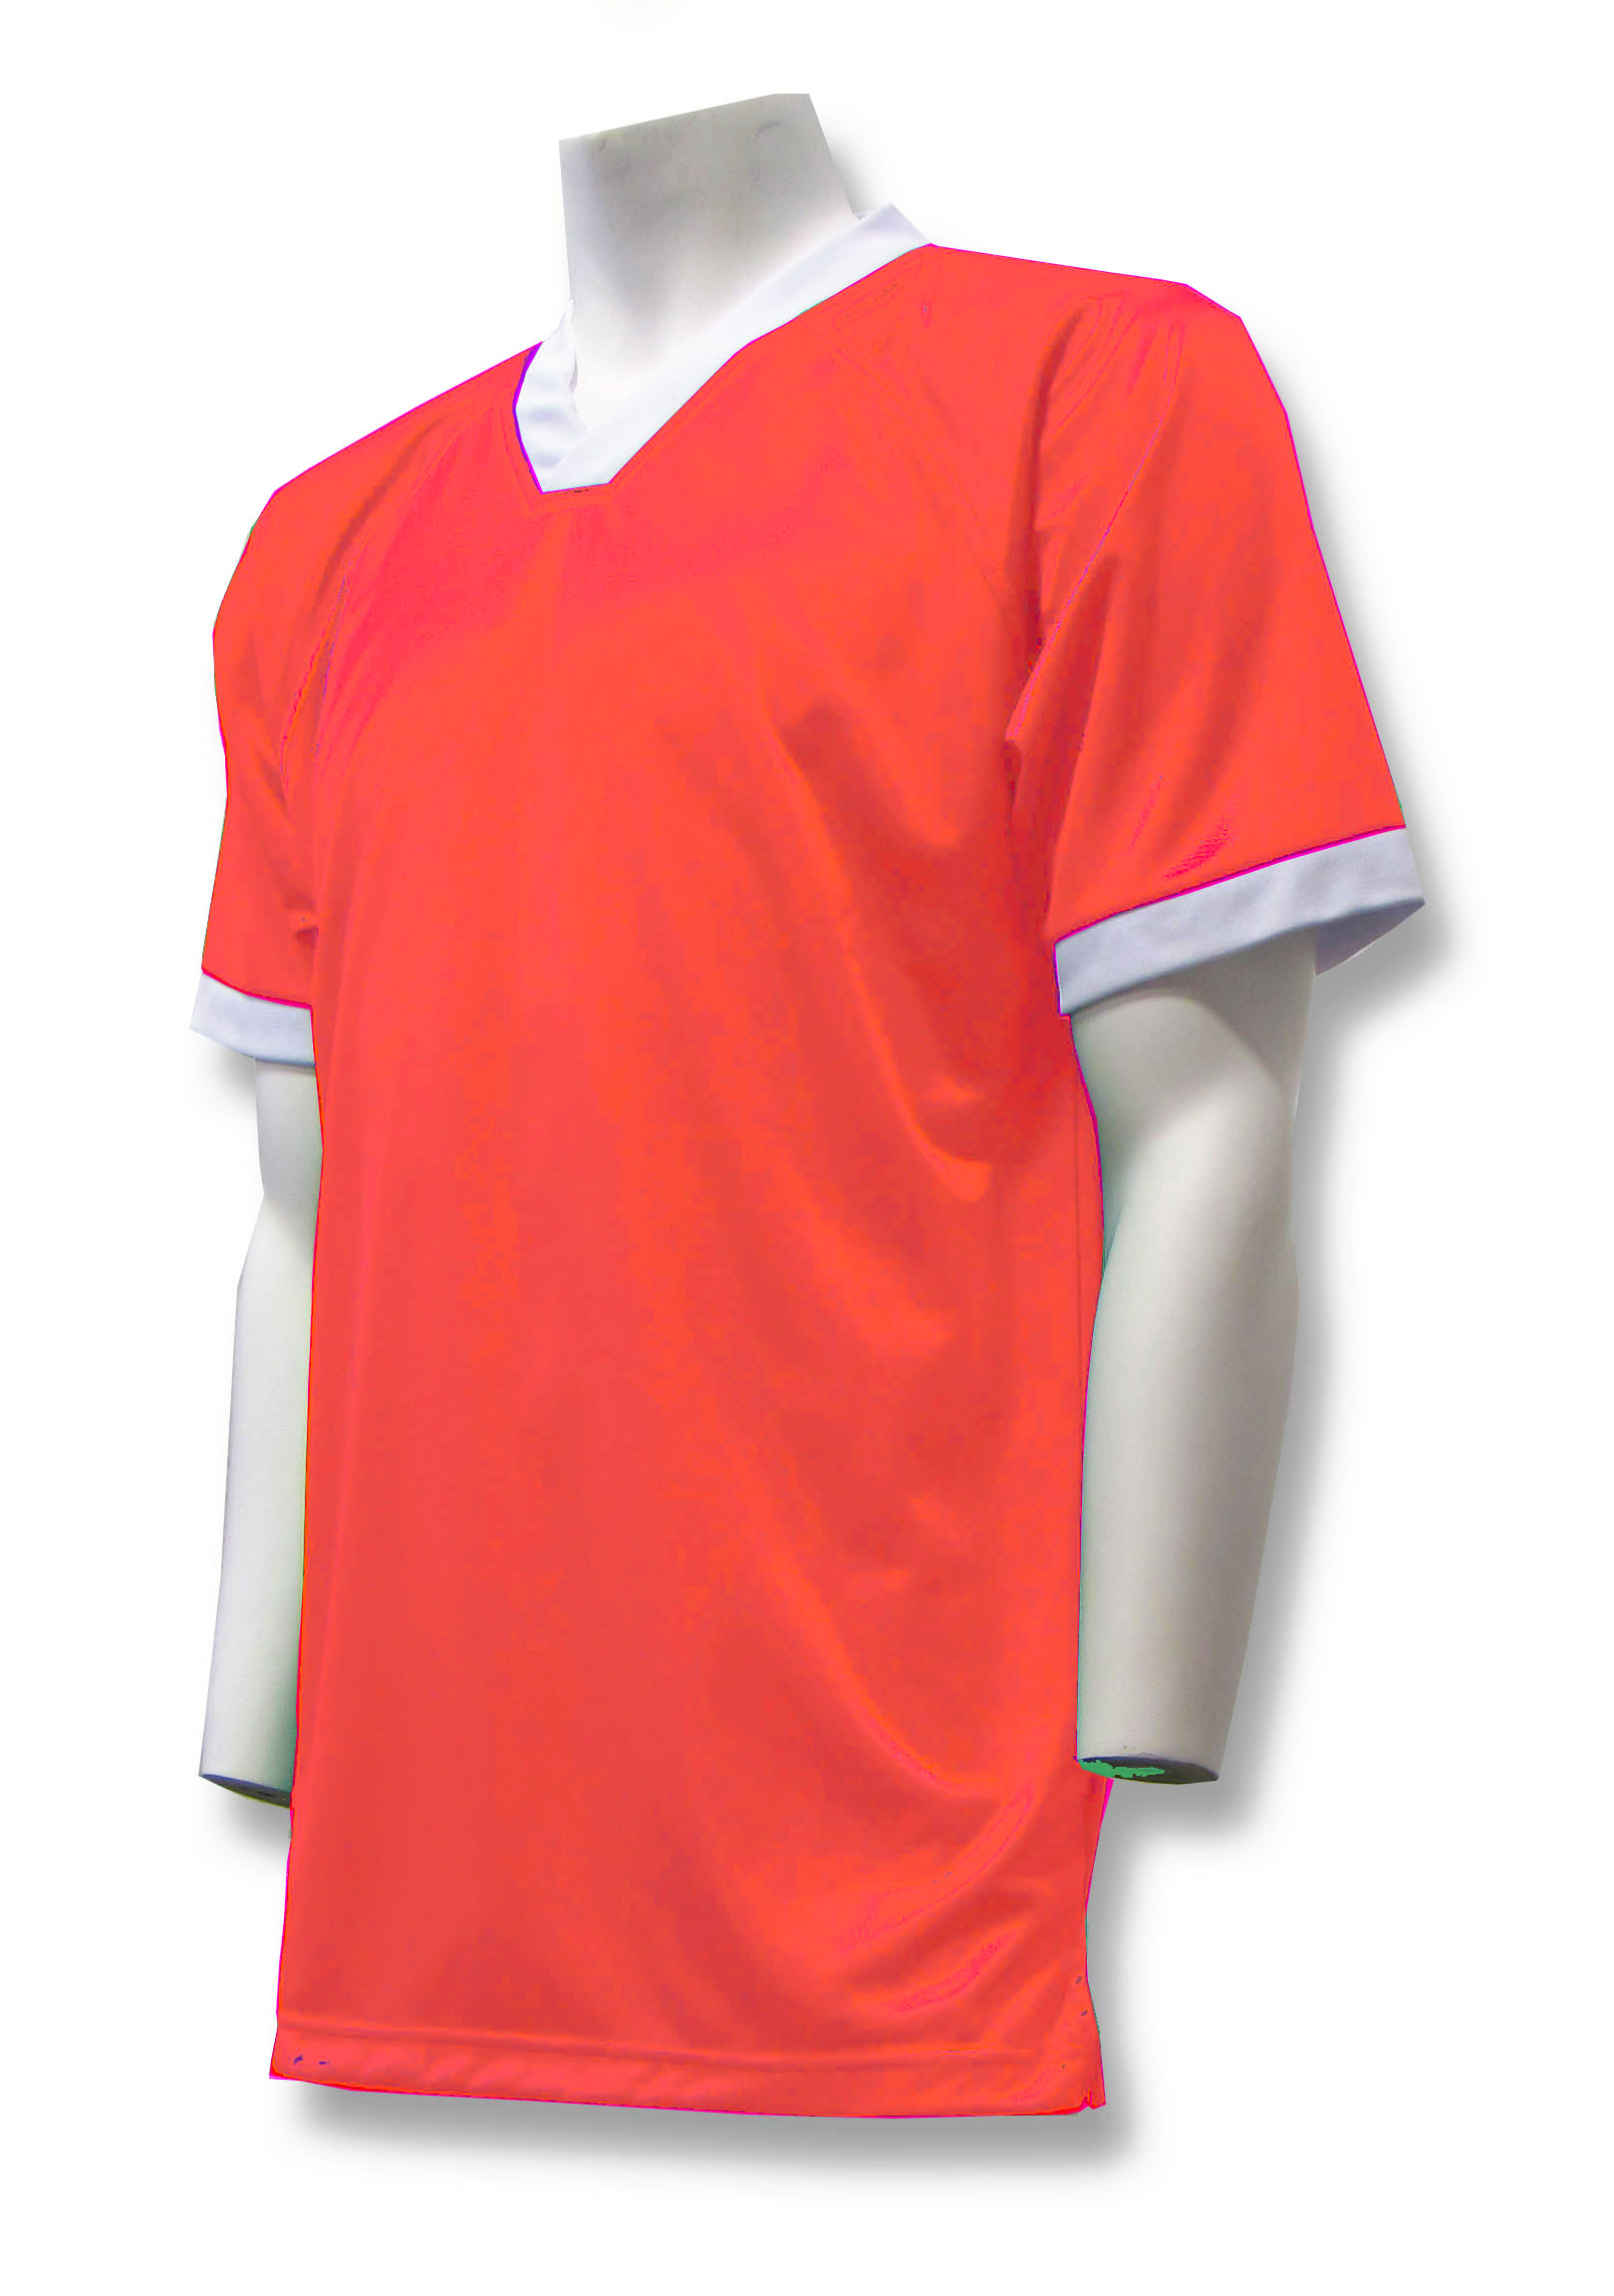 Pioneer soccer jersey in orange by Code Four Athletics